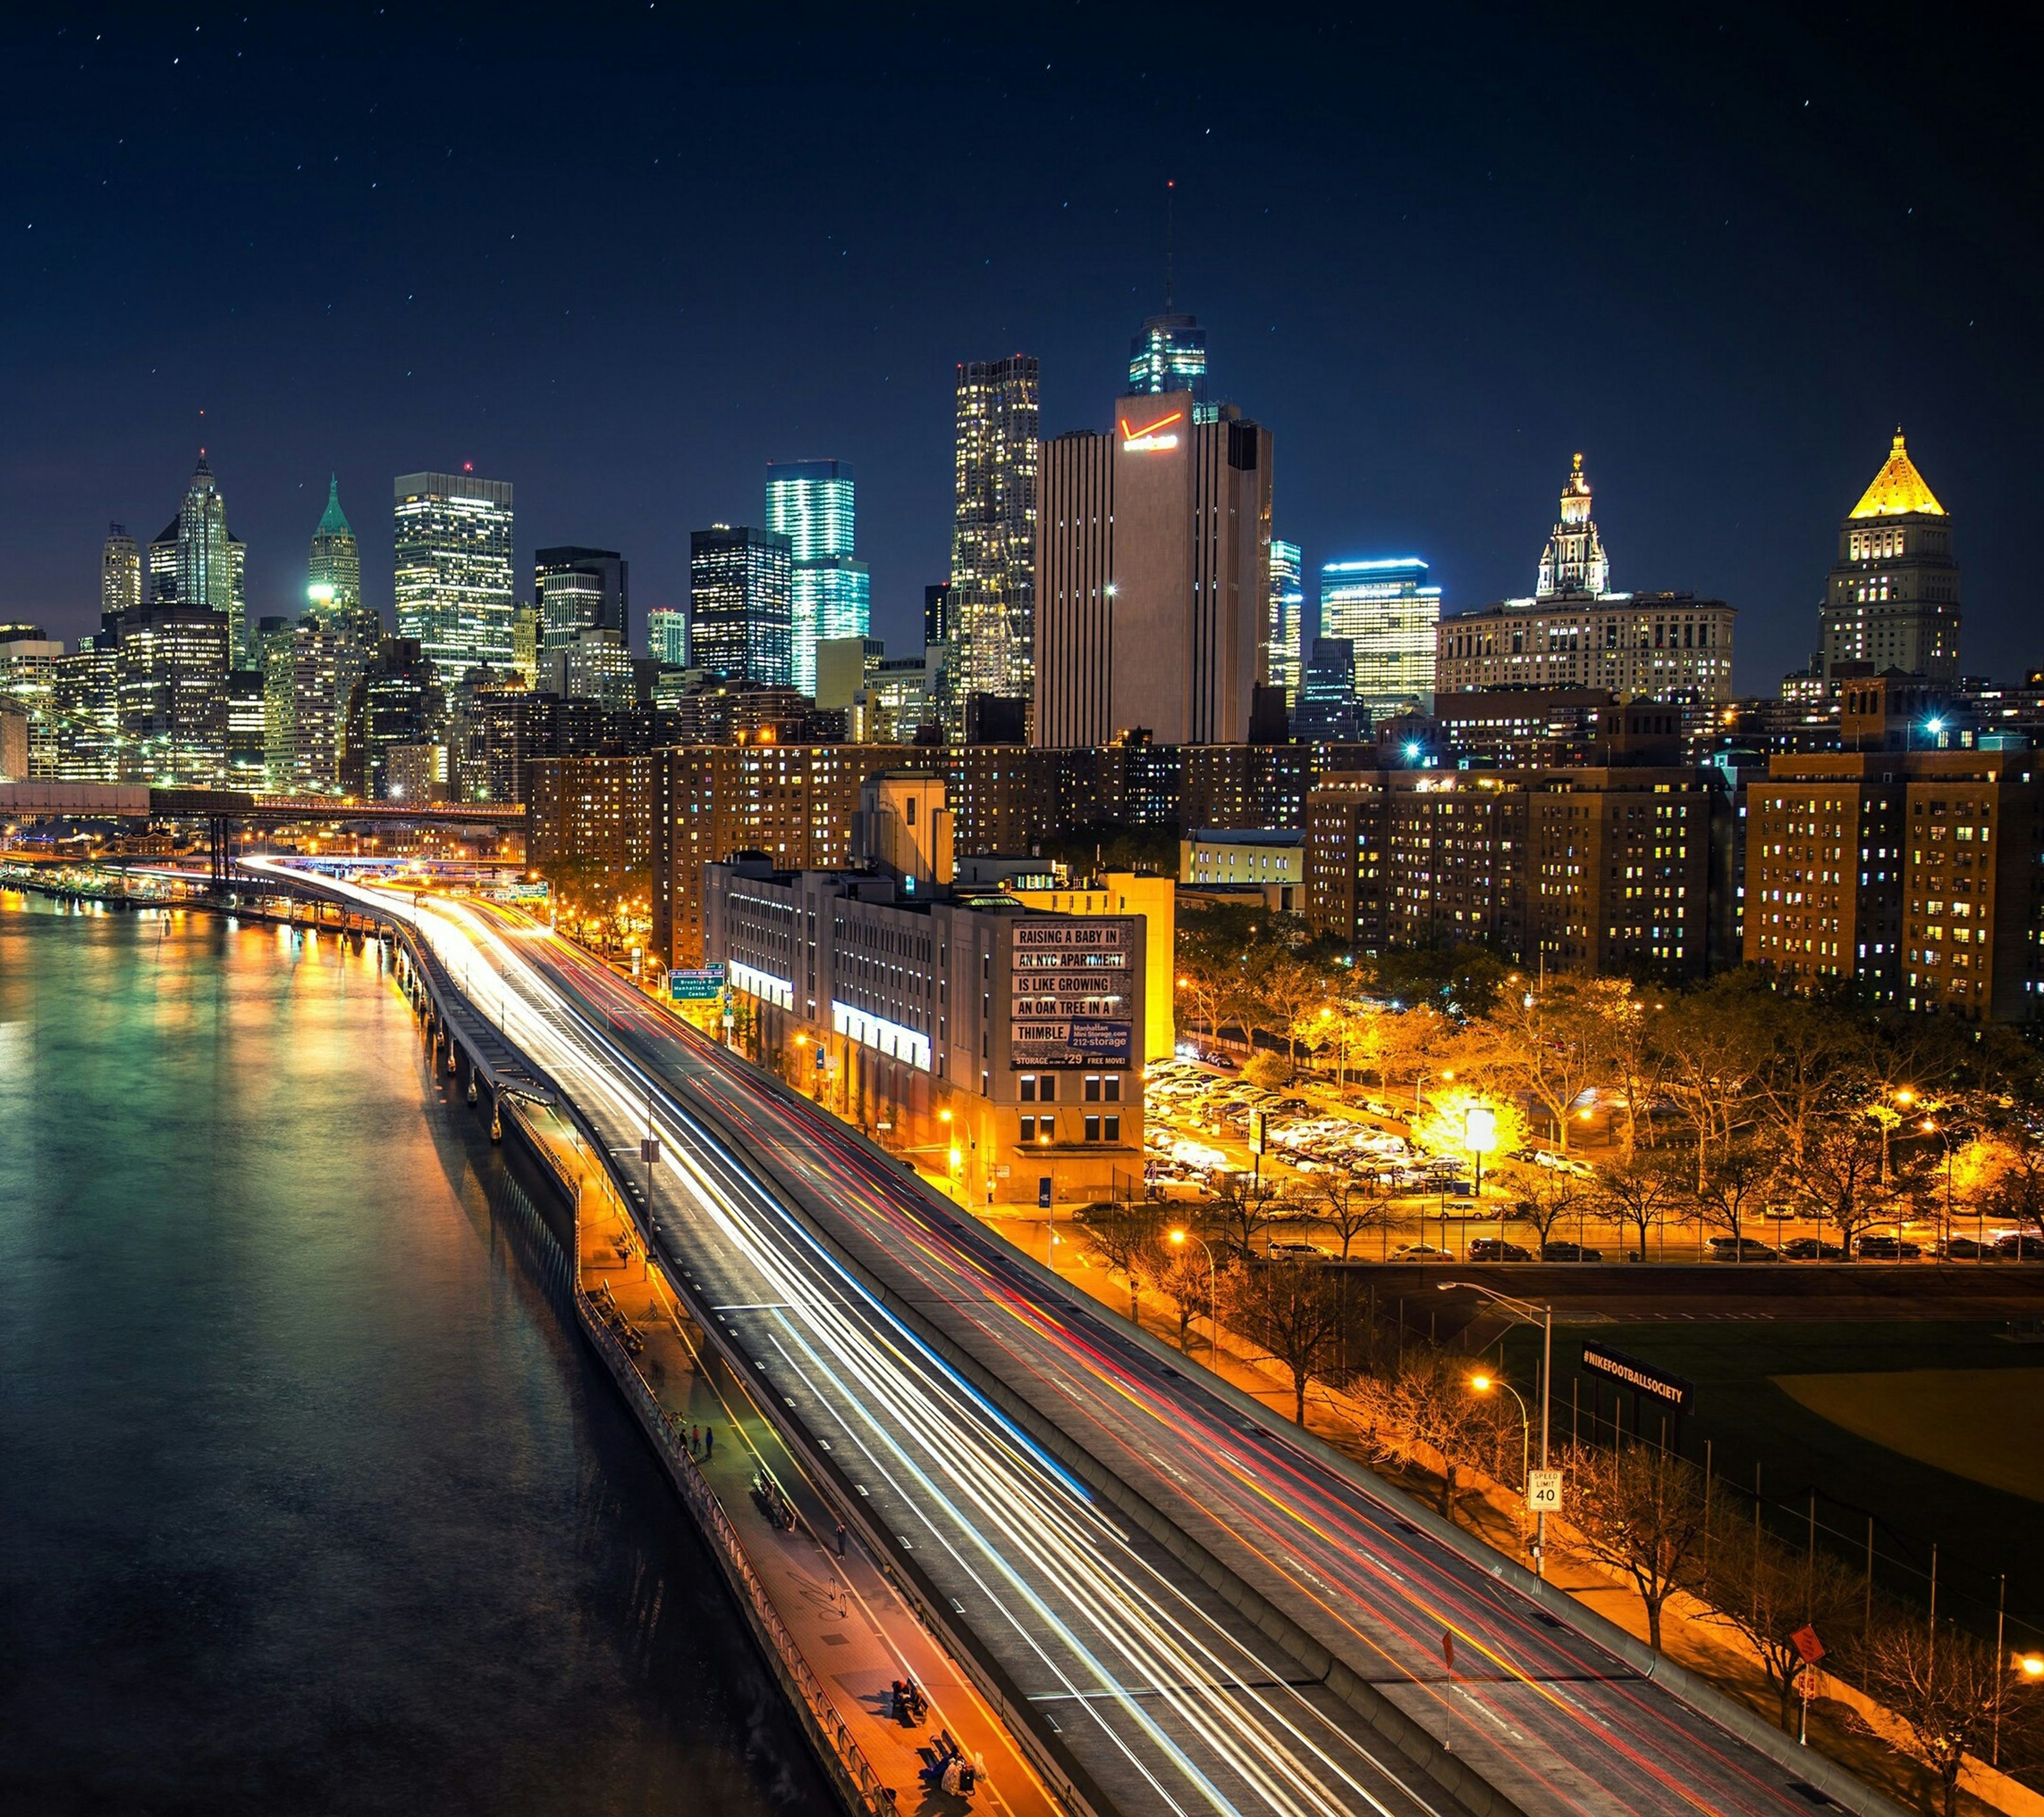 illuminated, night, city, building exterior, architecture, built structure, cityscape, skyscraper, light trail, long exposure, transportation, modern, city life, river, high angle view, water, tower, tall - high, office building, sky